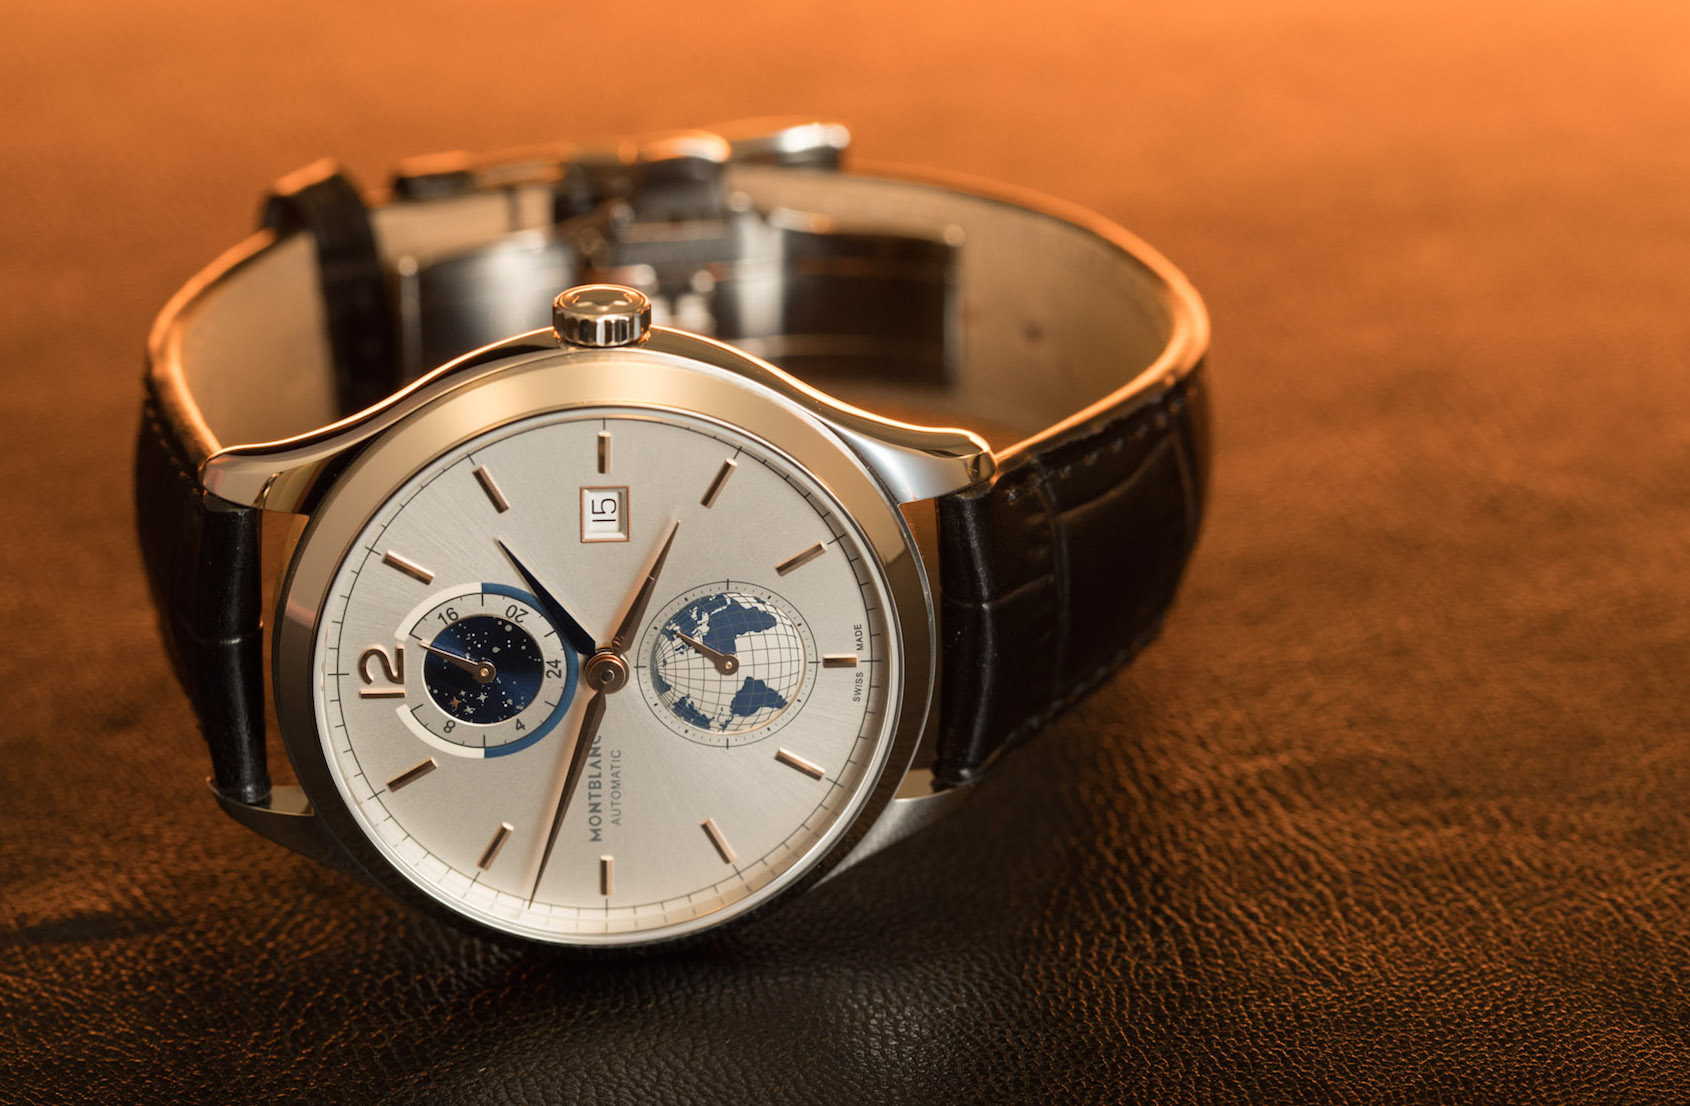 Montblanc Heritage Vasco Da Gama Montblanc At Watches Wonders We Go Hands On